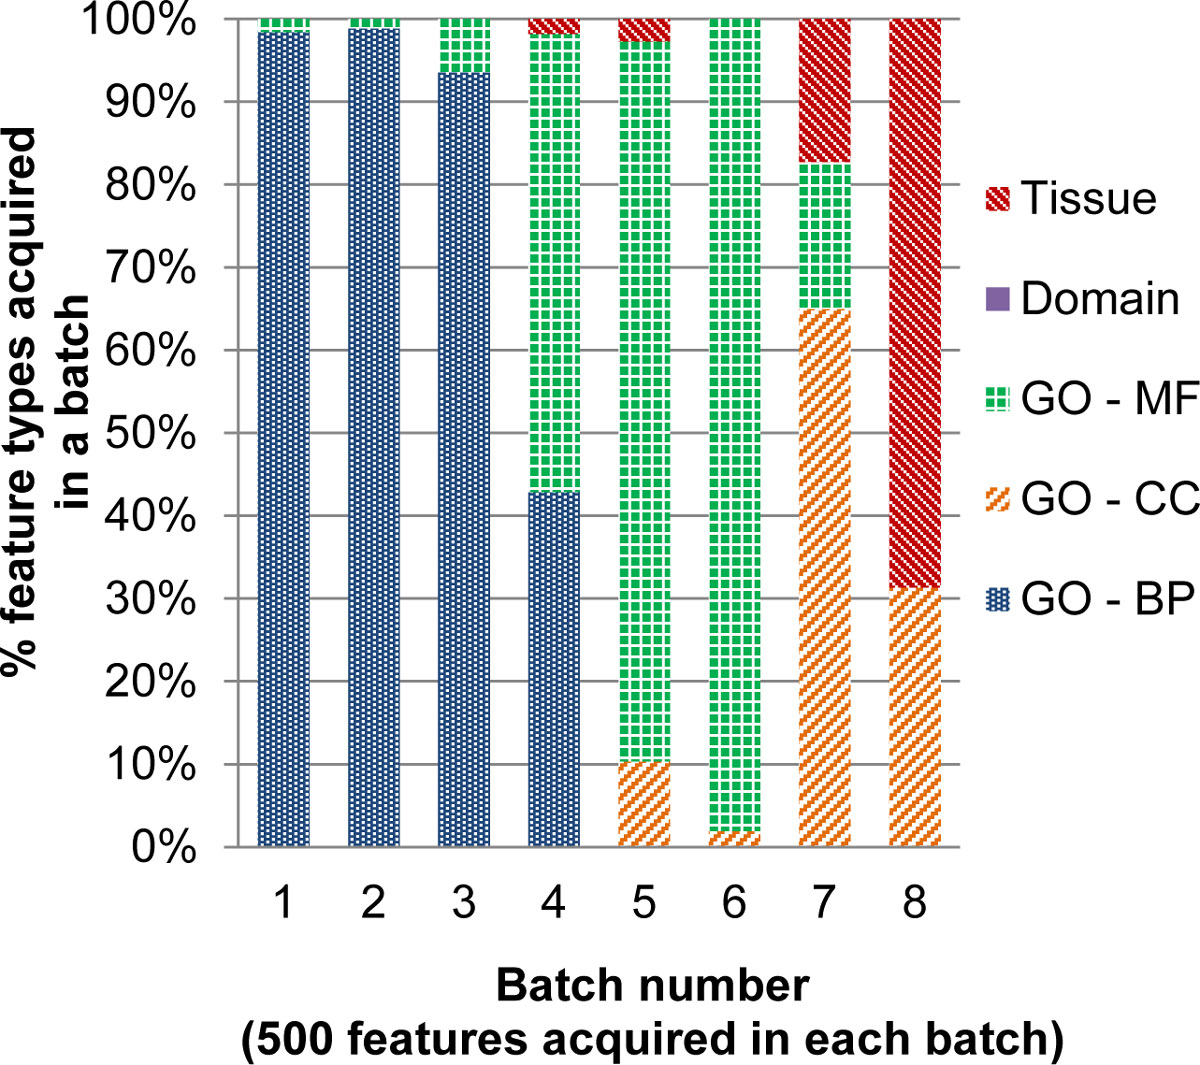 http://static-content.springer.com/image/art%3A10.1186%2F1753-6561-6-S7-S2/MediaObjects/12919_2012_Article_1555_Fig3_HTML.jpg